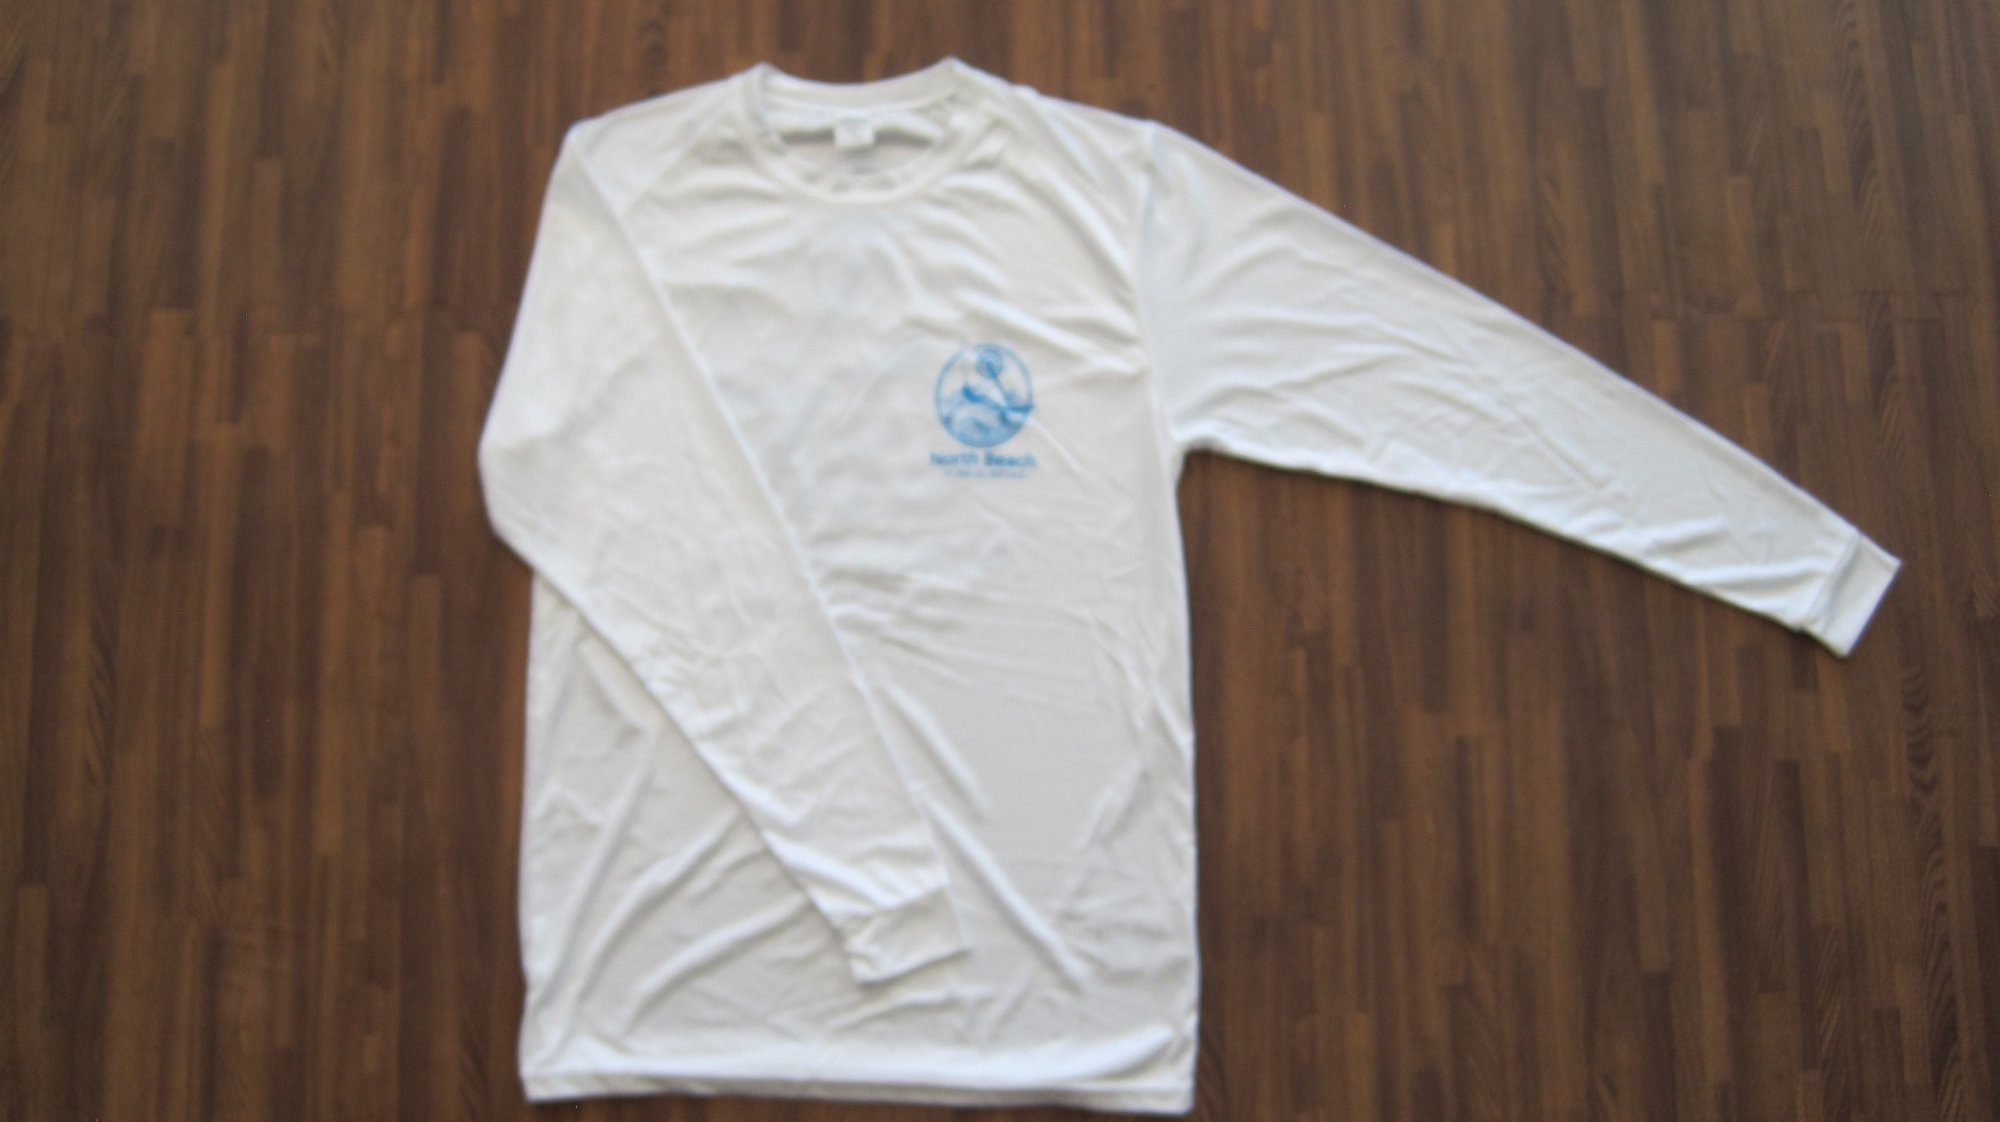 North Beach Windsurfing Rash Guard